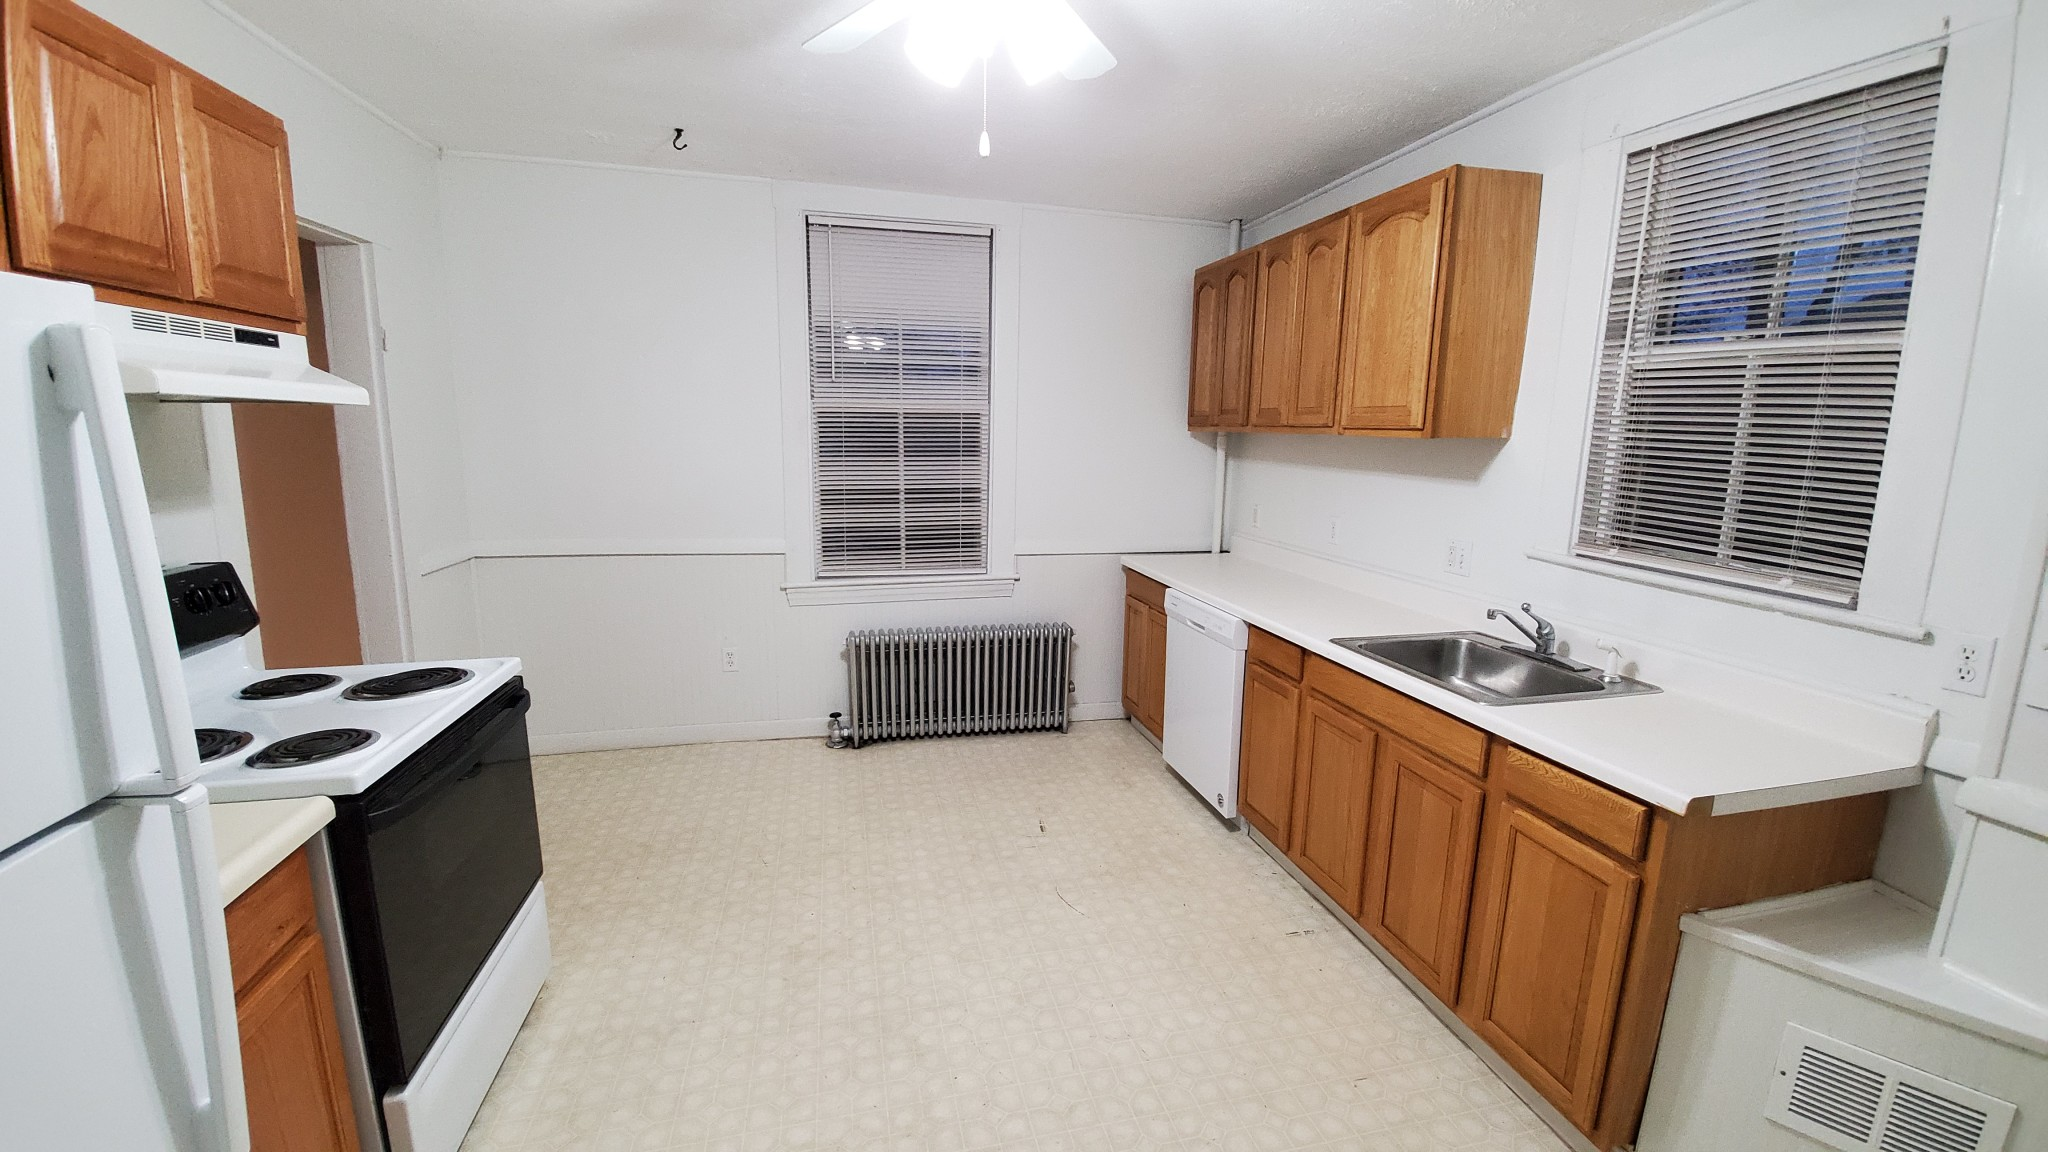 2 Beds, 1 Bath apartment in Waltham for $1,650